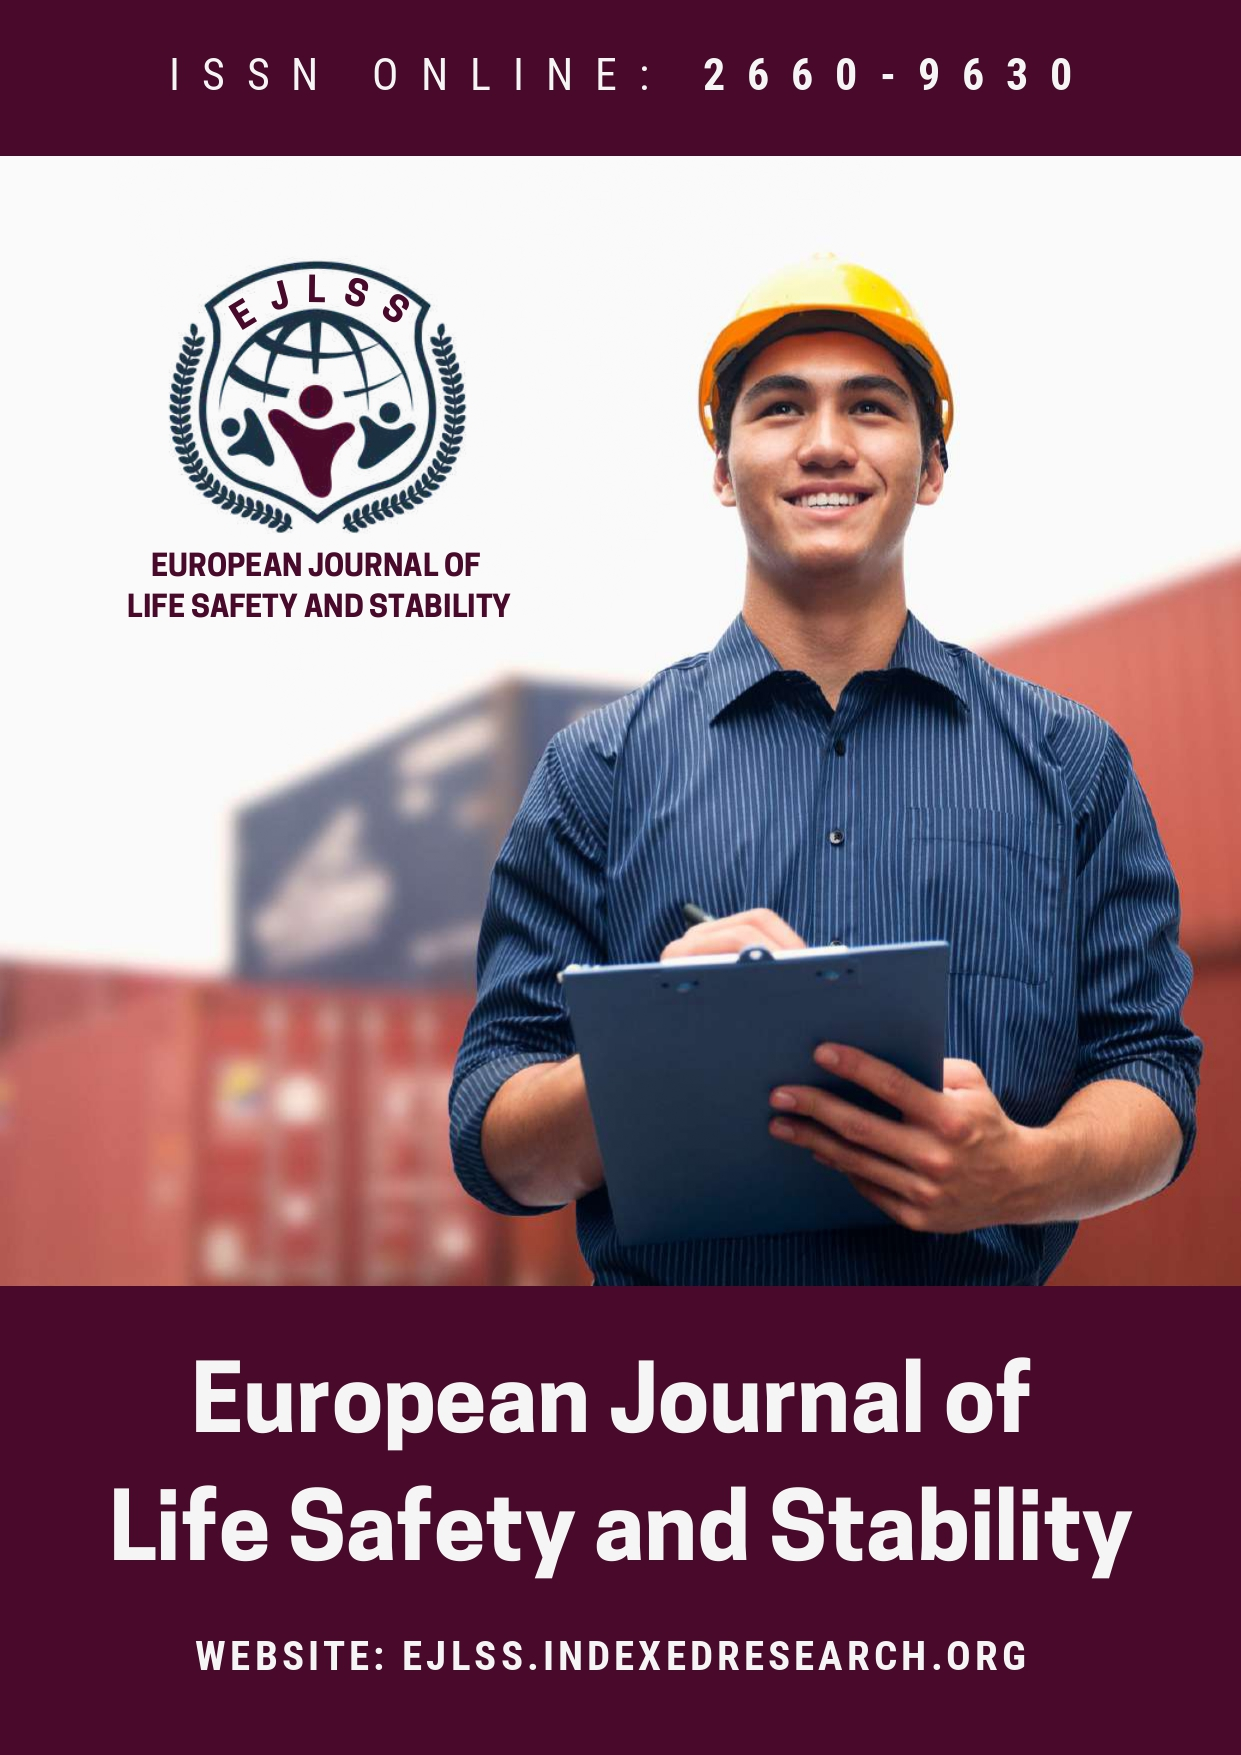 European Journal of Life Safety and Stability